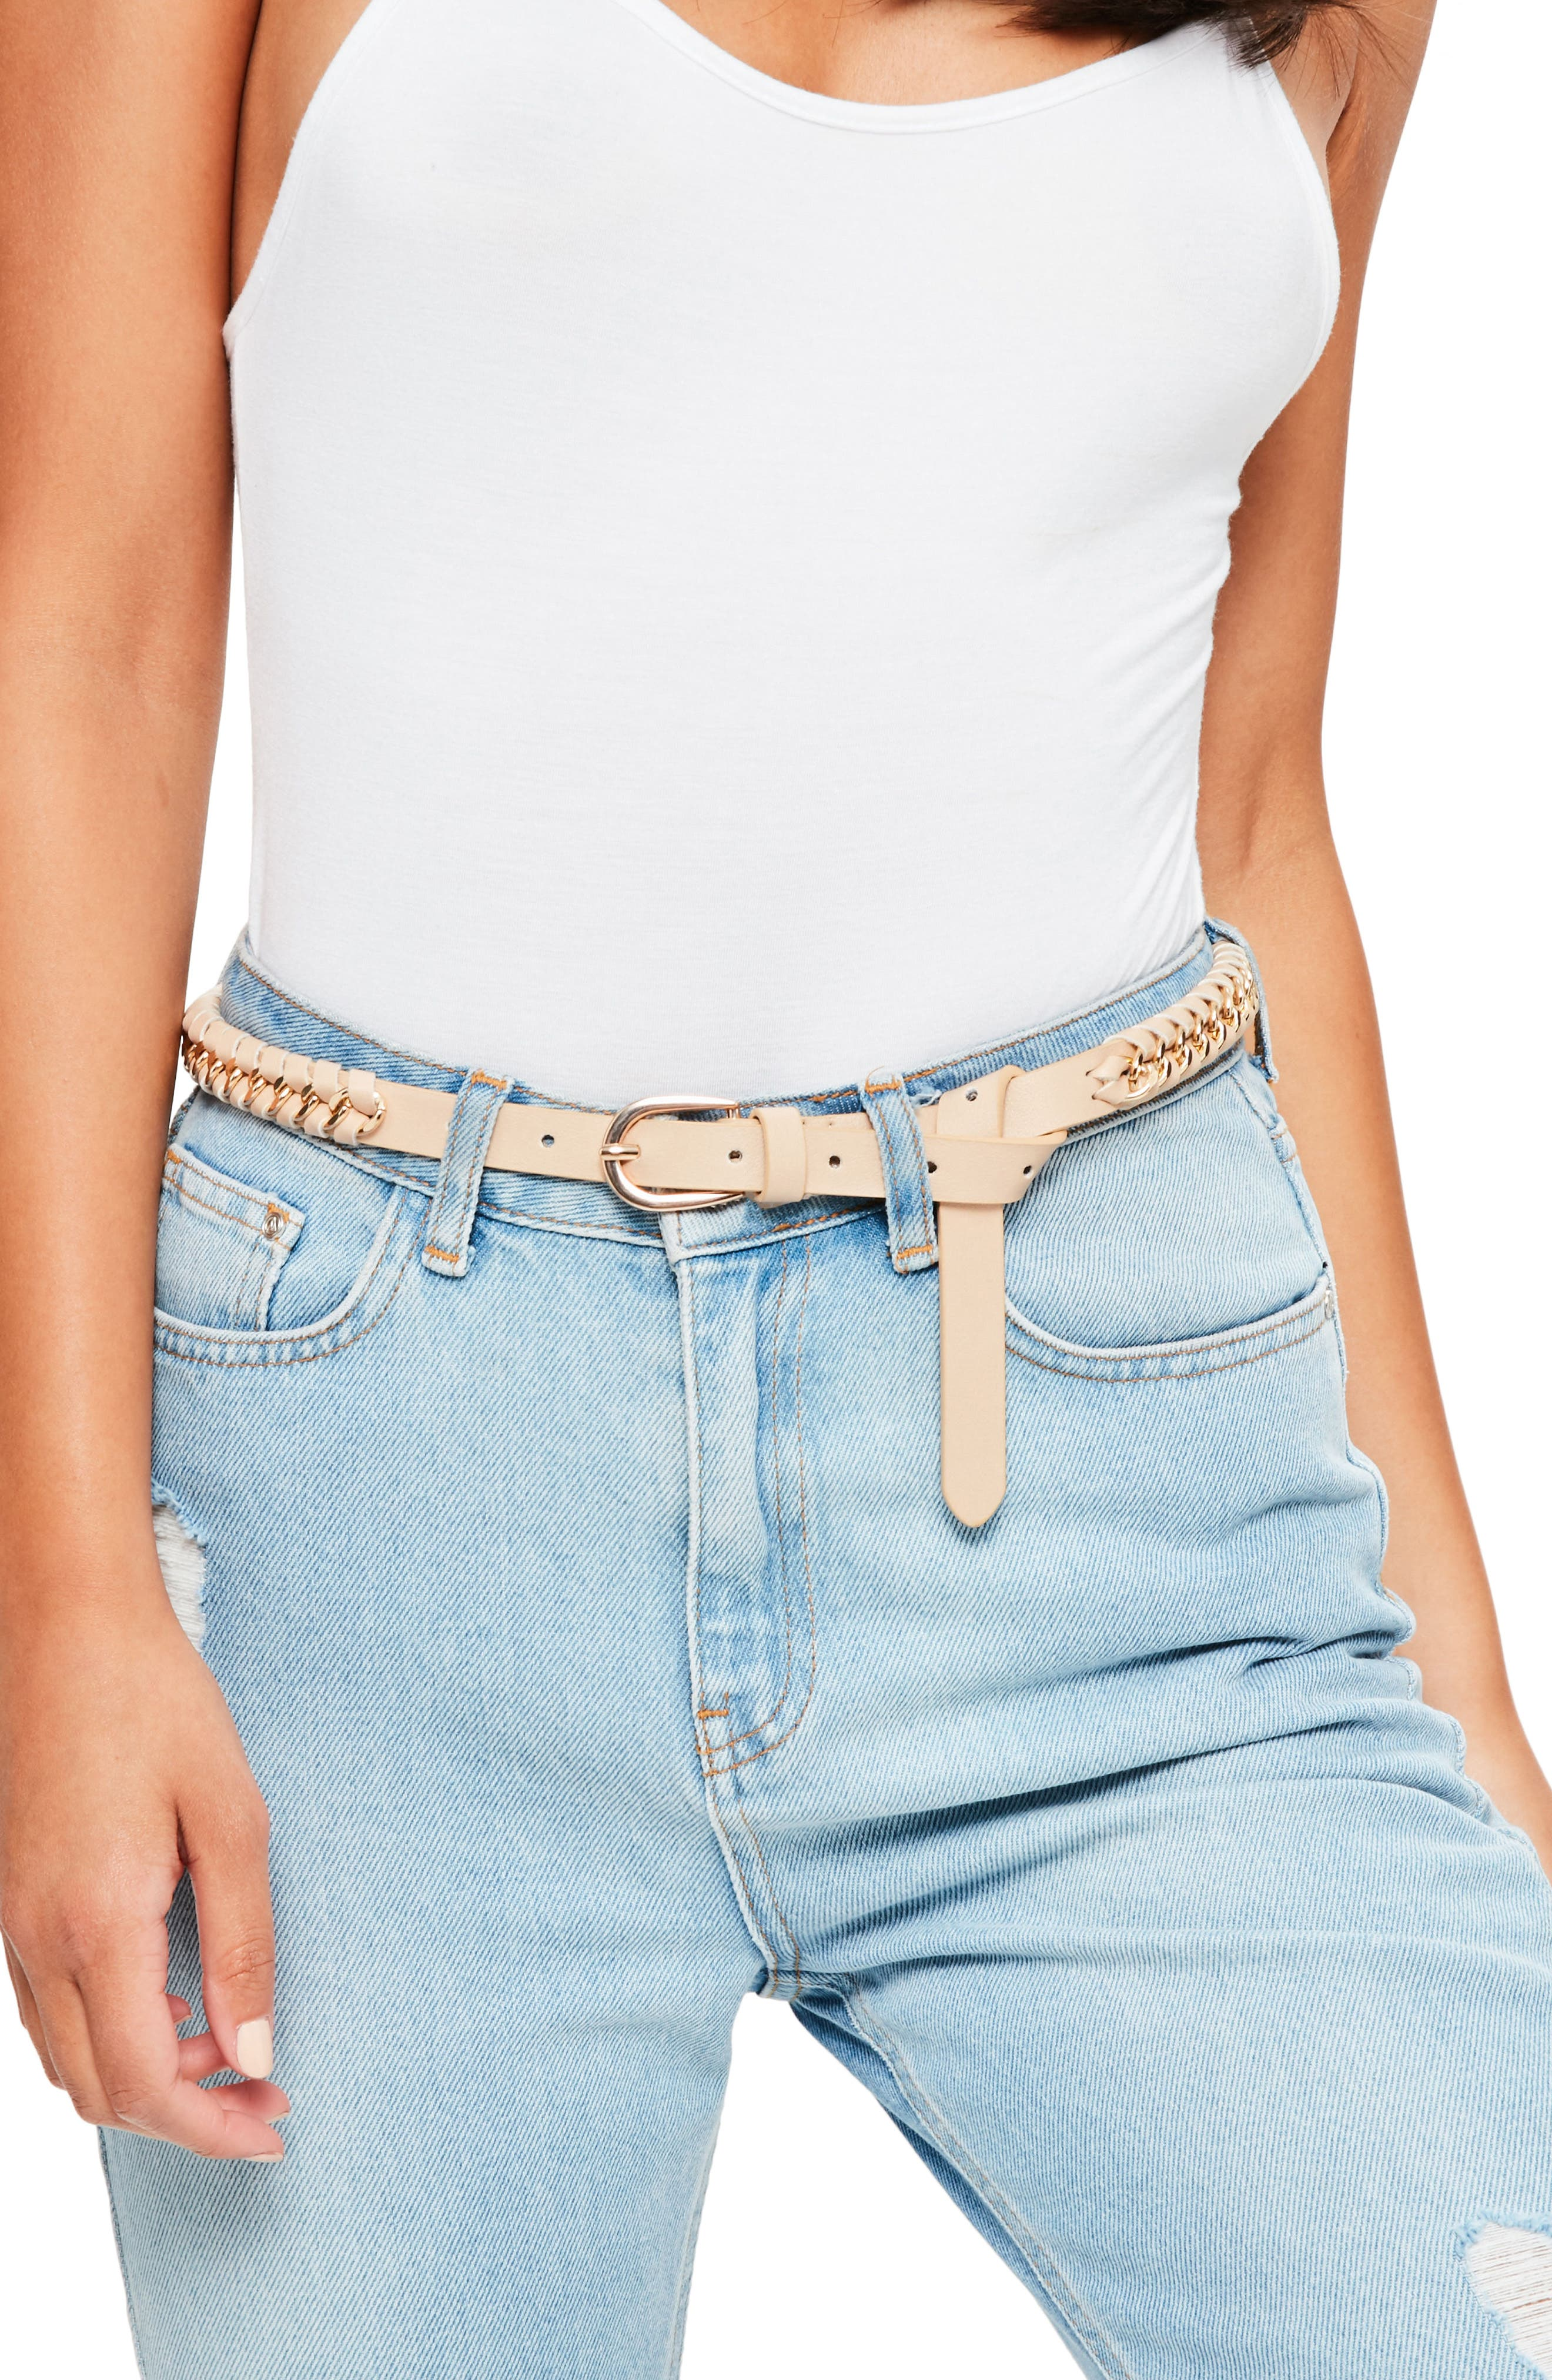 Main Image - Missguided Woven Faux Leather & Chain Belt